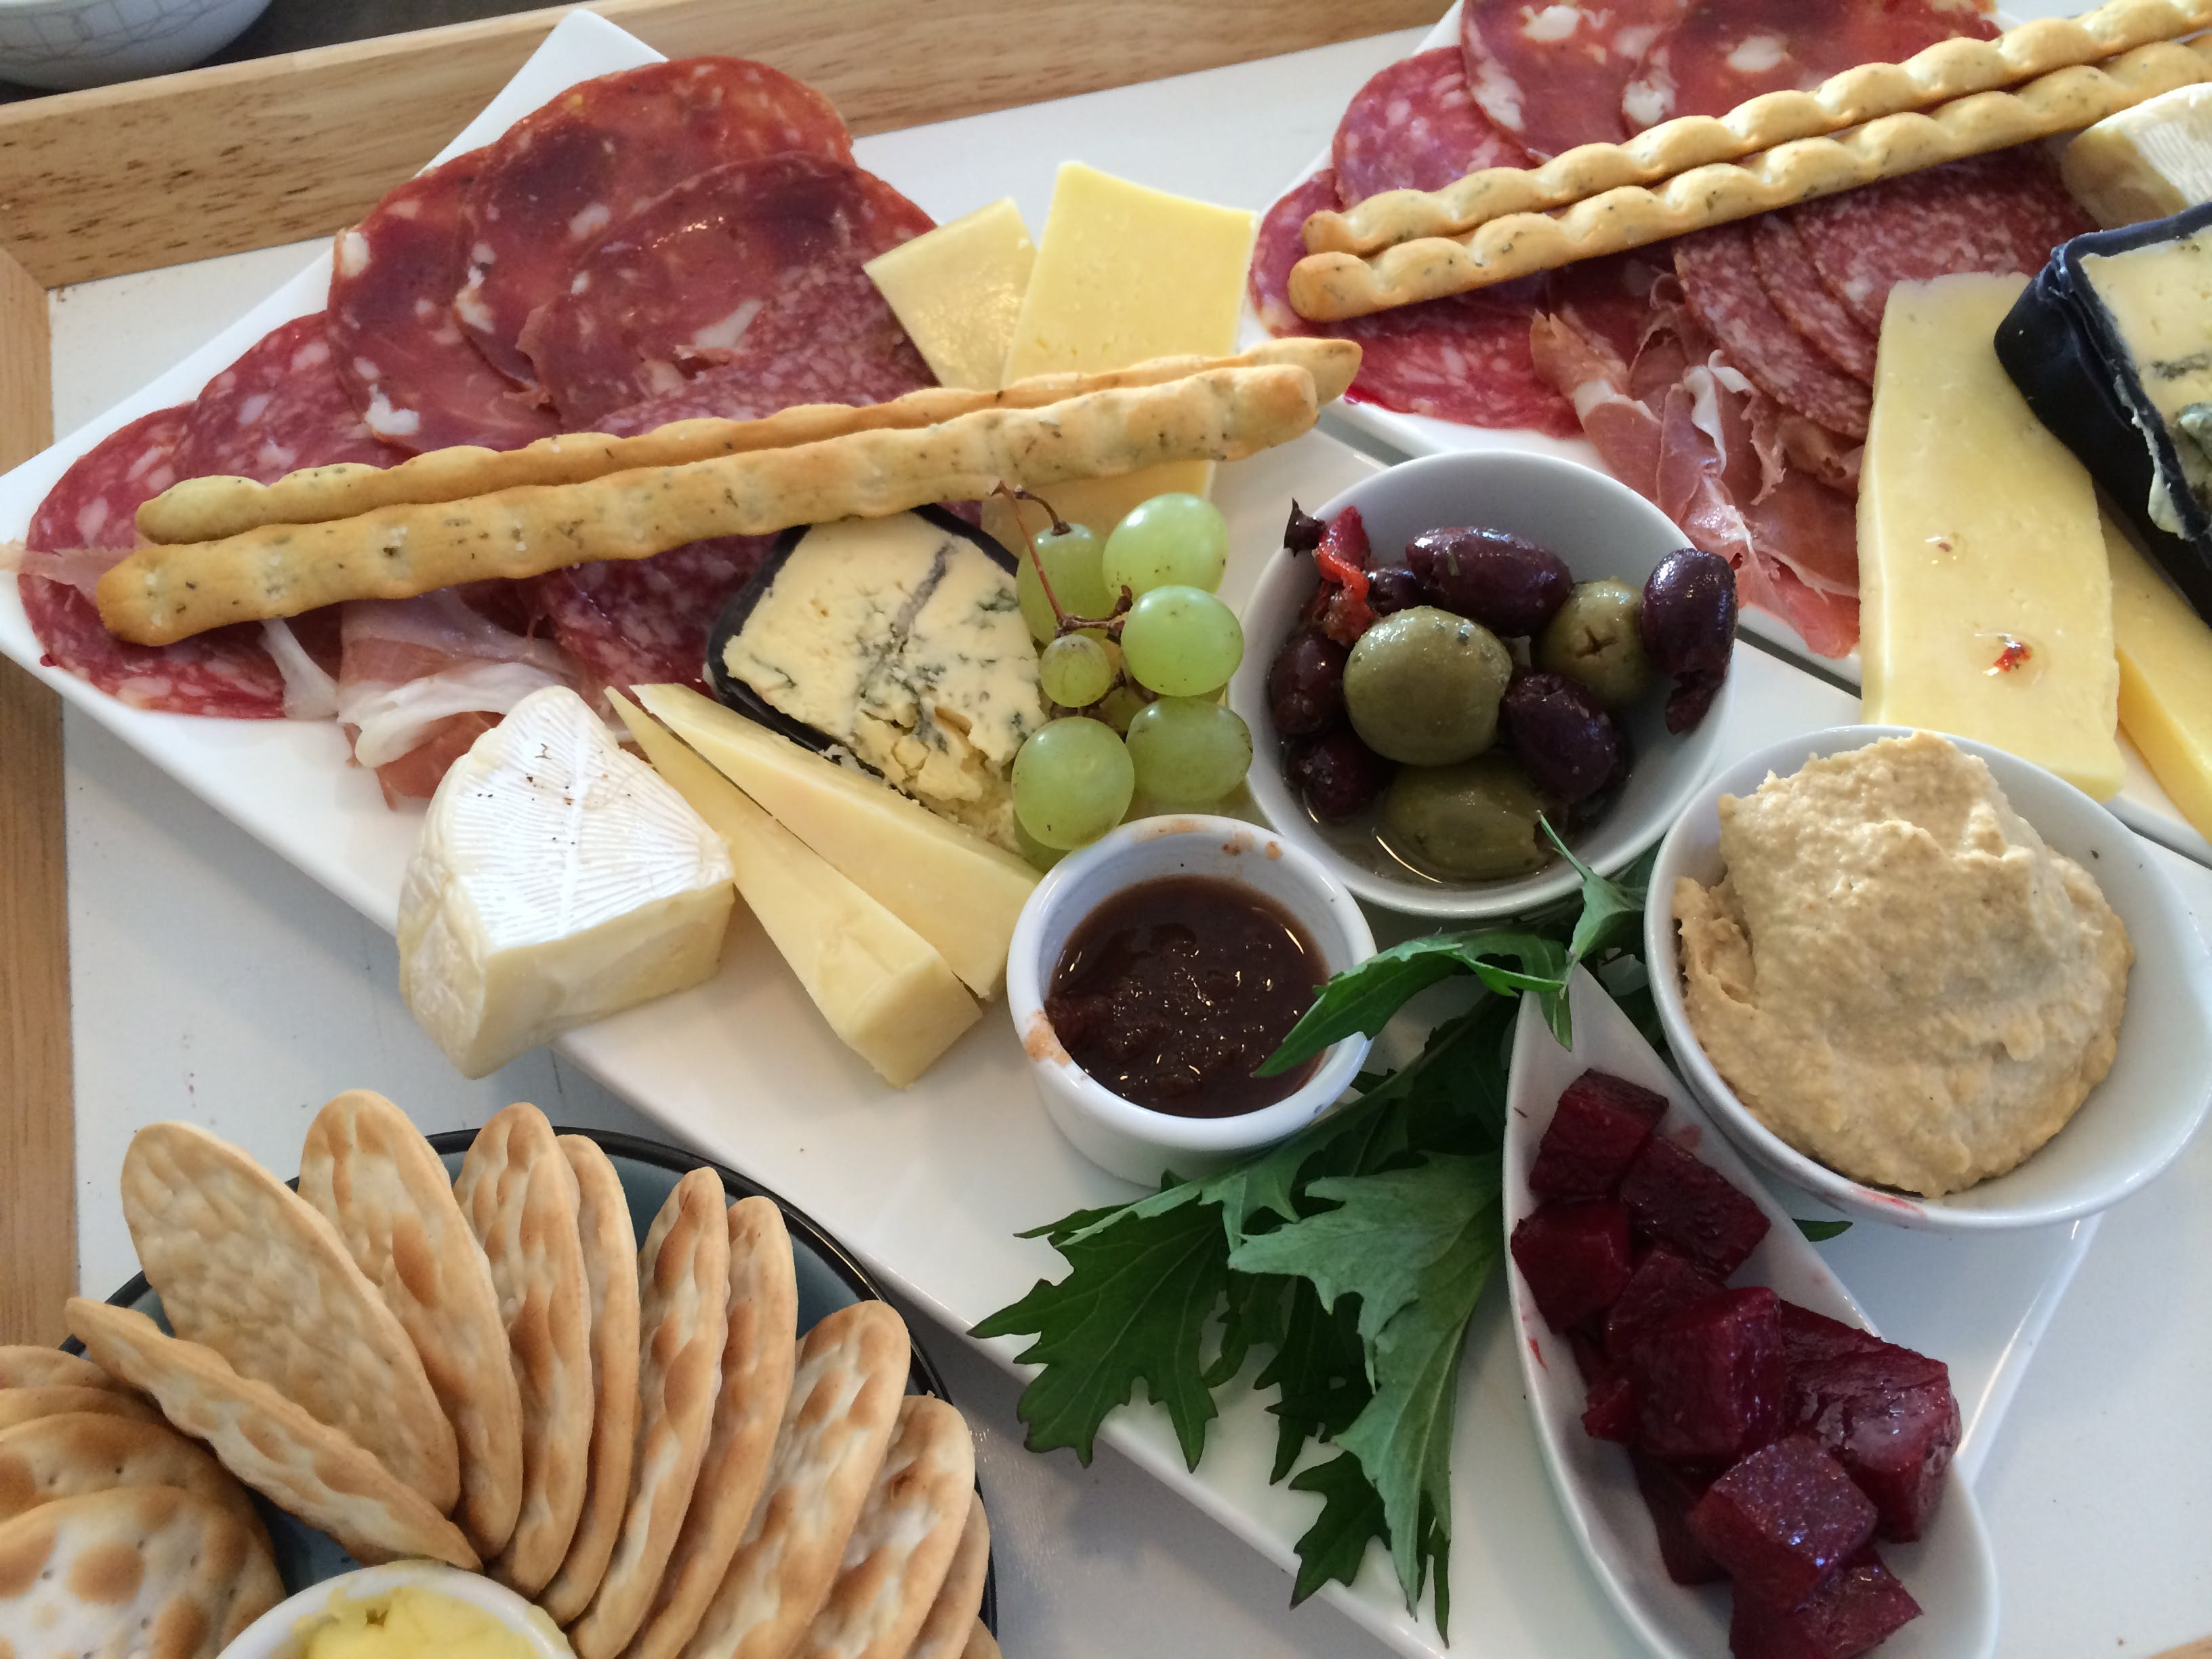 Delicious antipasto platter to enjoy on the deck with a glass of wine.